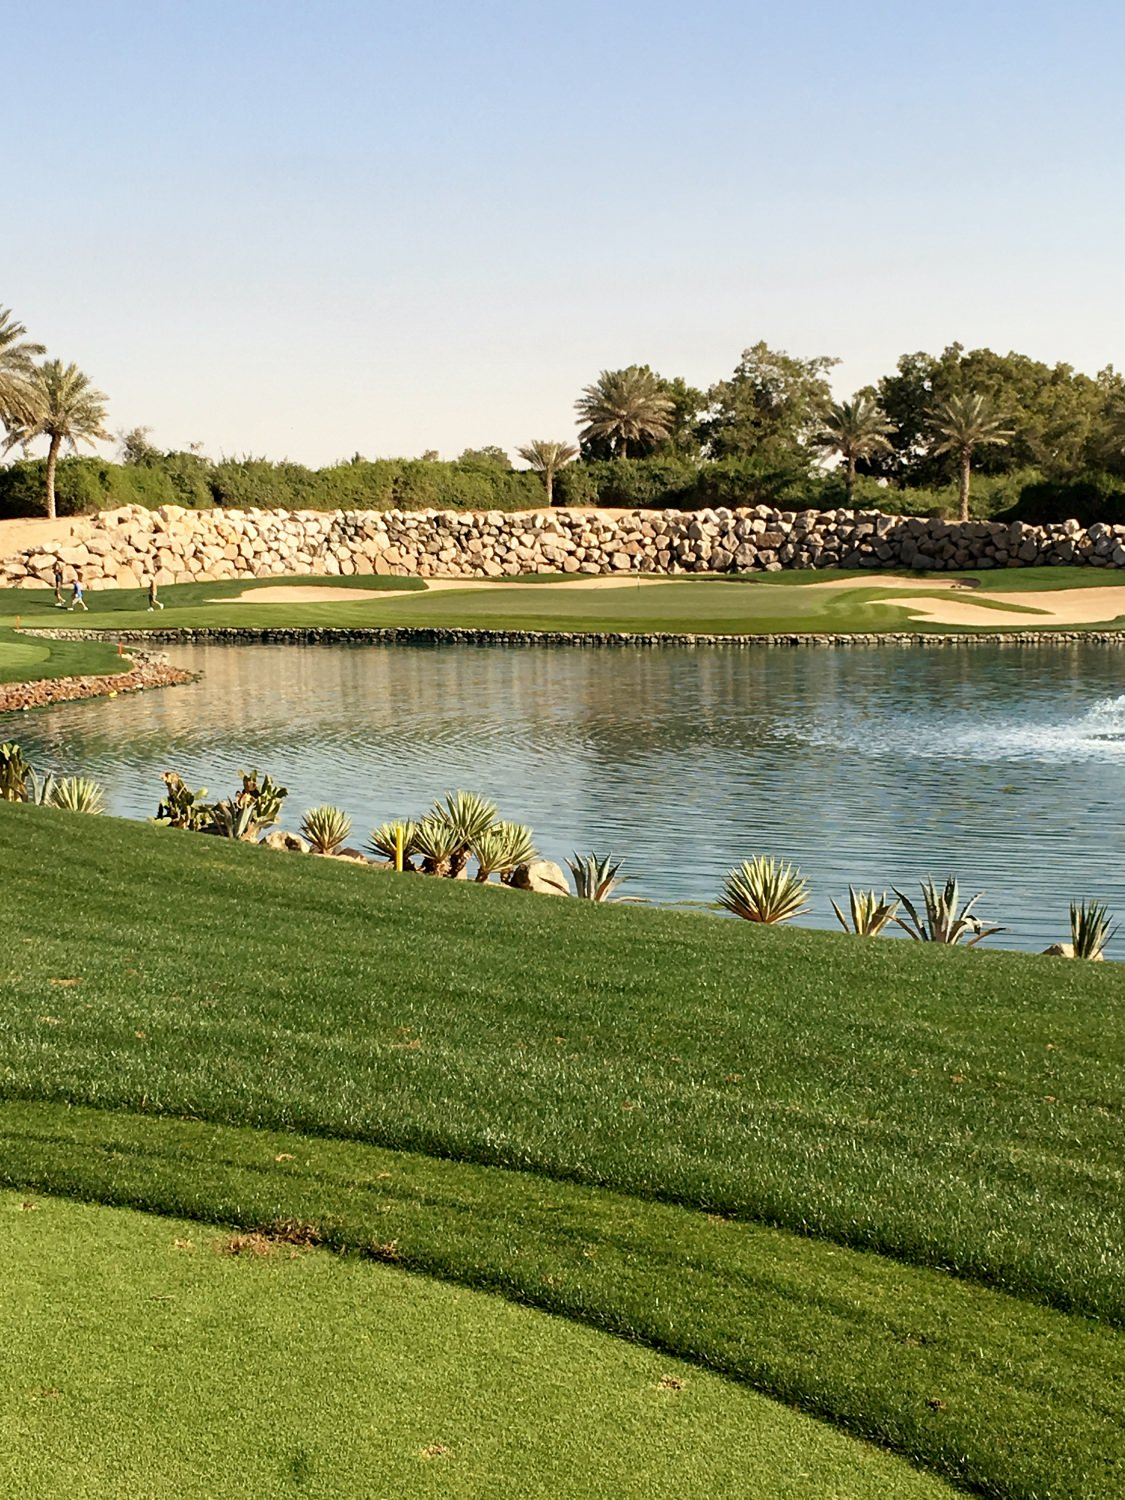 Abu Dhabi 12th